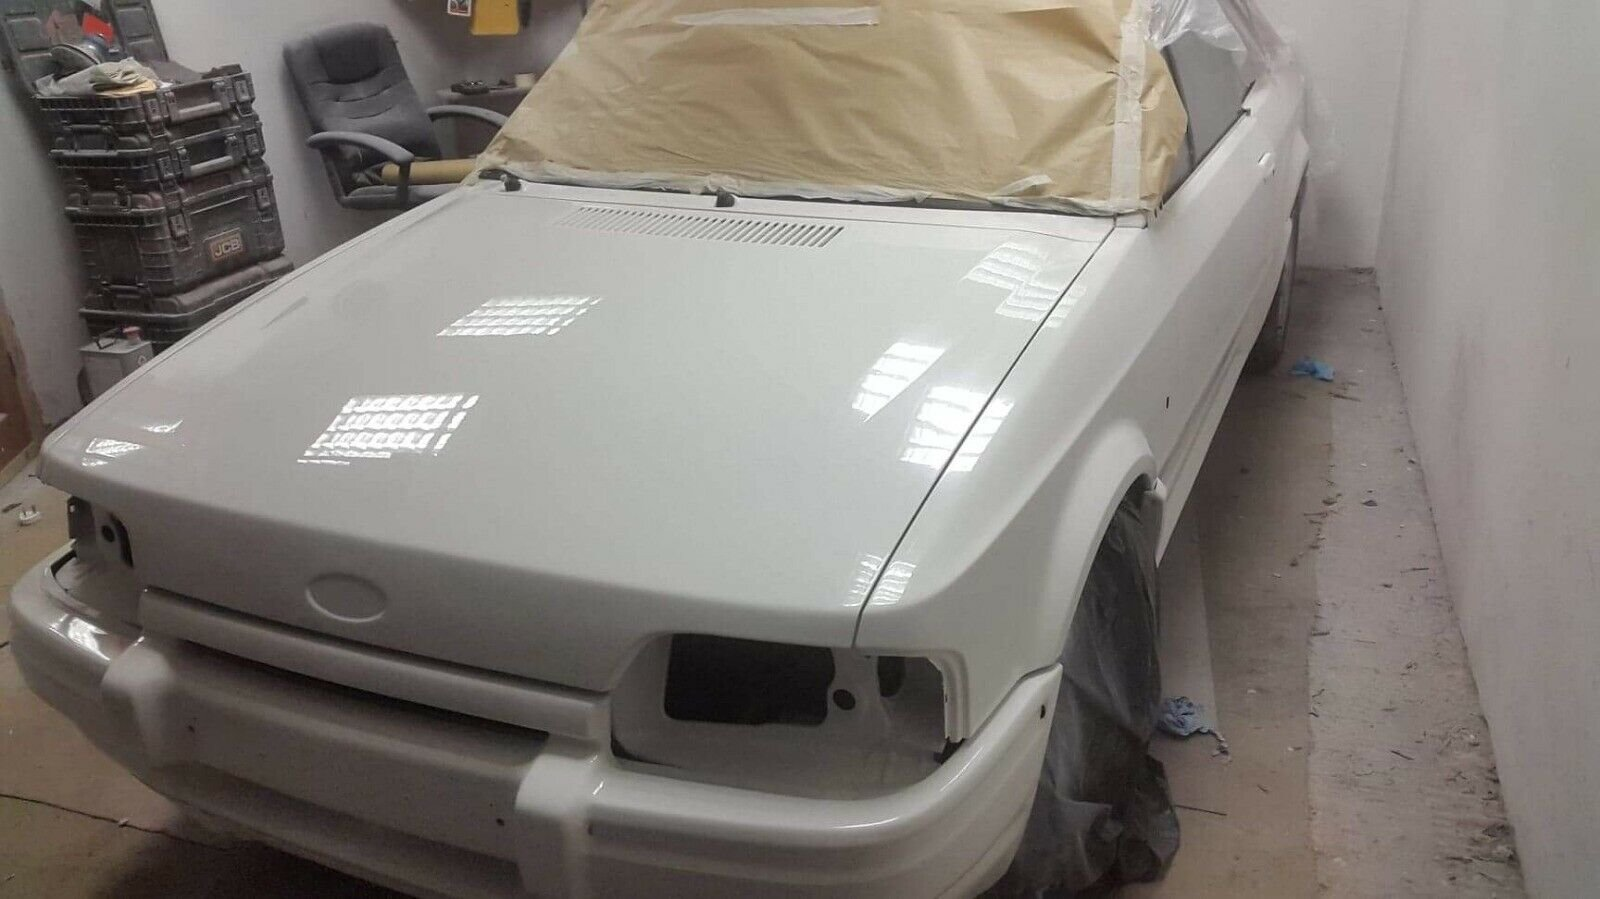 1988 Ford Escort Cabriolet XR3i or swap  E30 cabriolet  For Sale (picture 5 of 6)